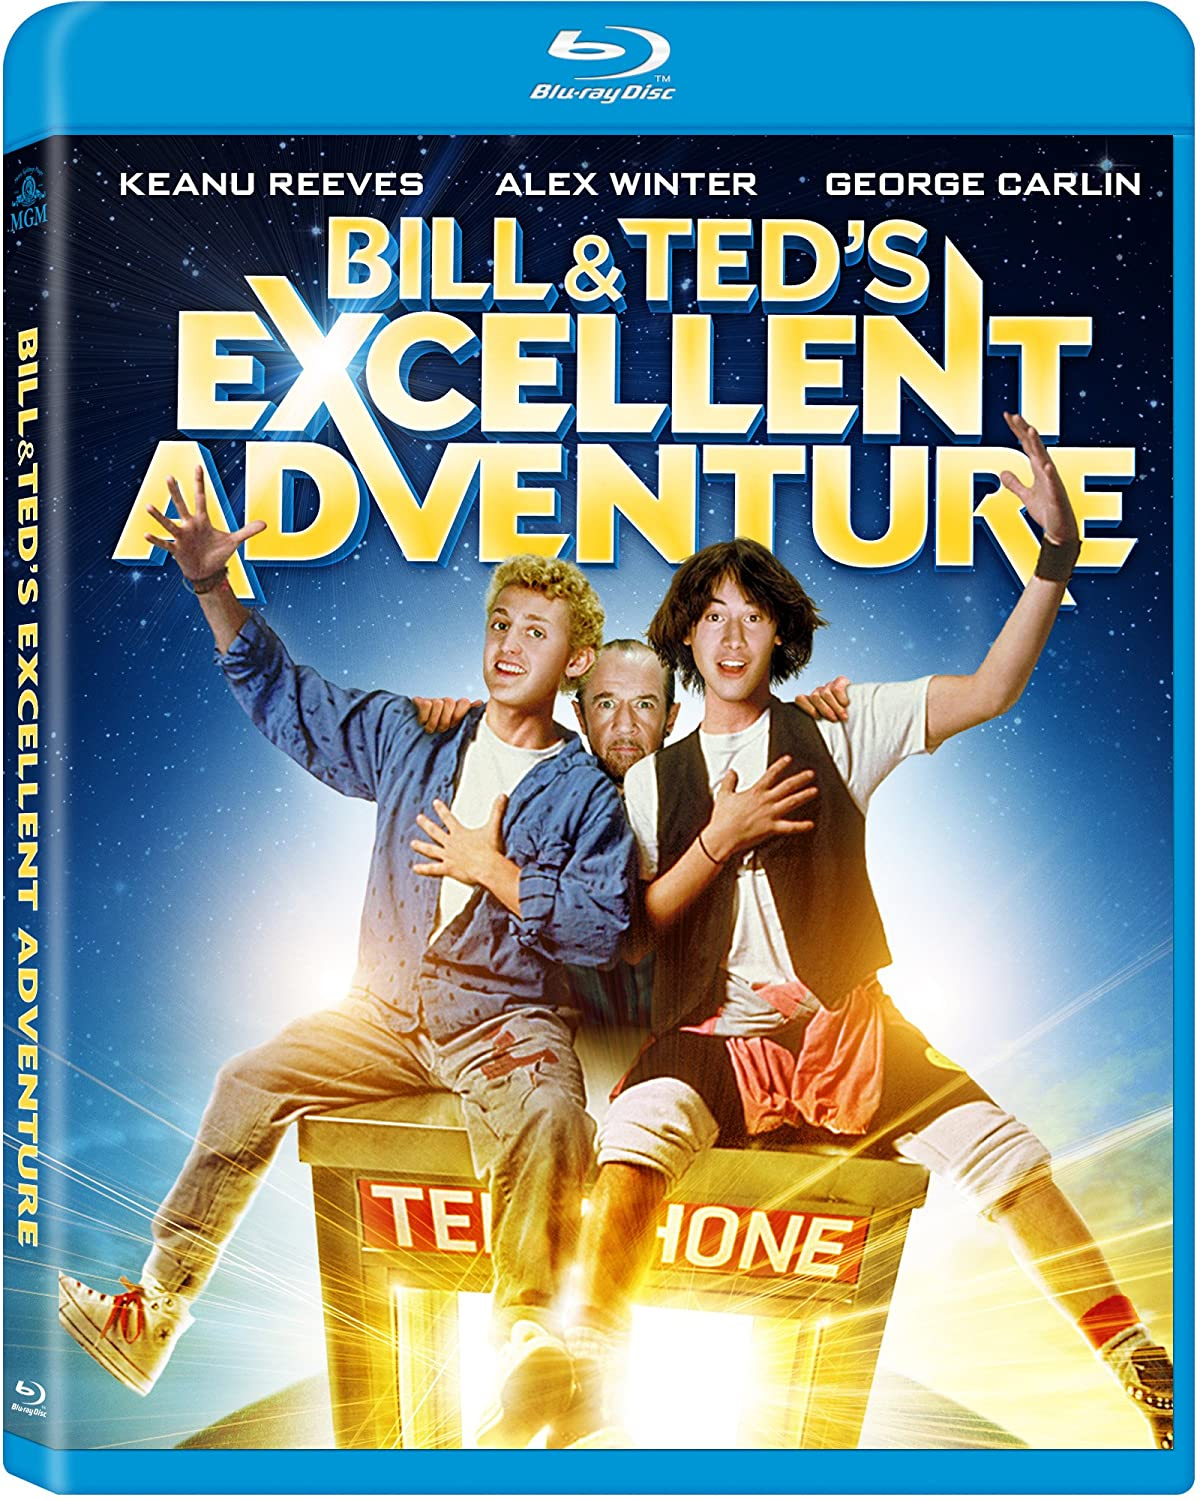 Amy Stock Poynton Nude blu-ray review: bill & ted's excellent adventure - slant